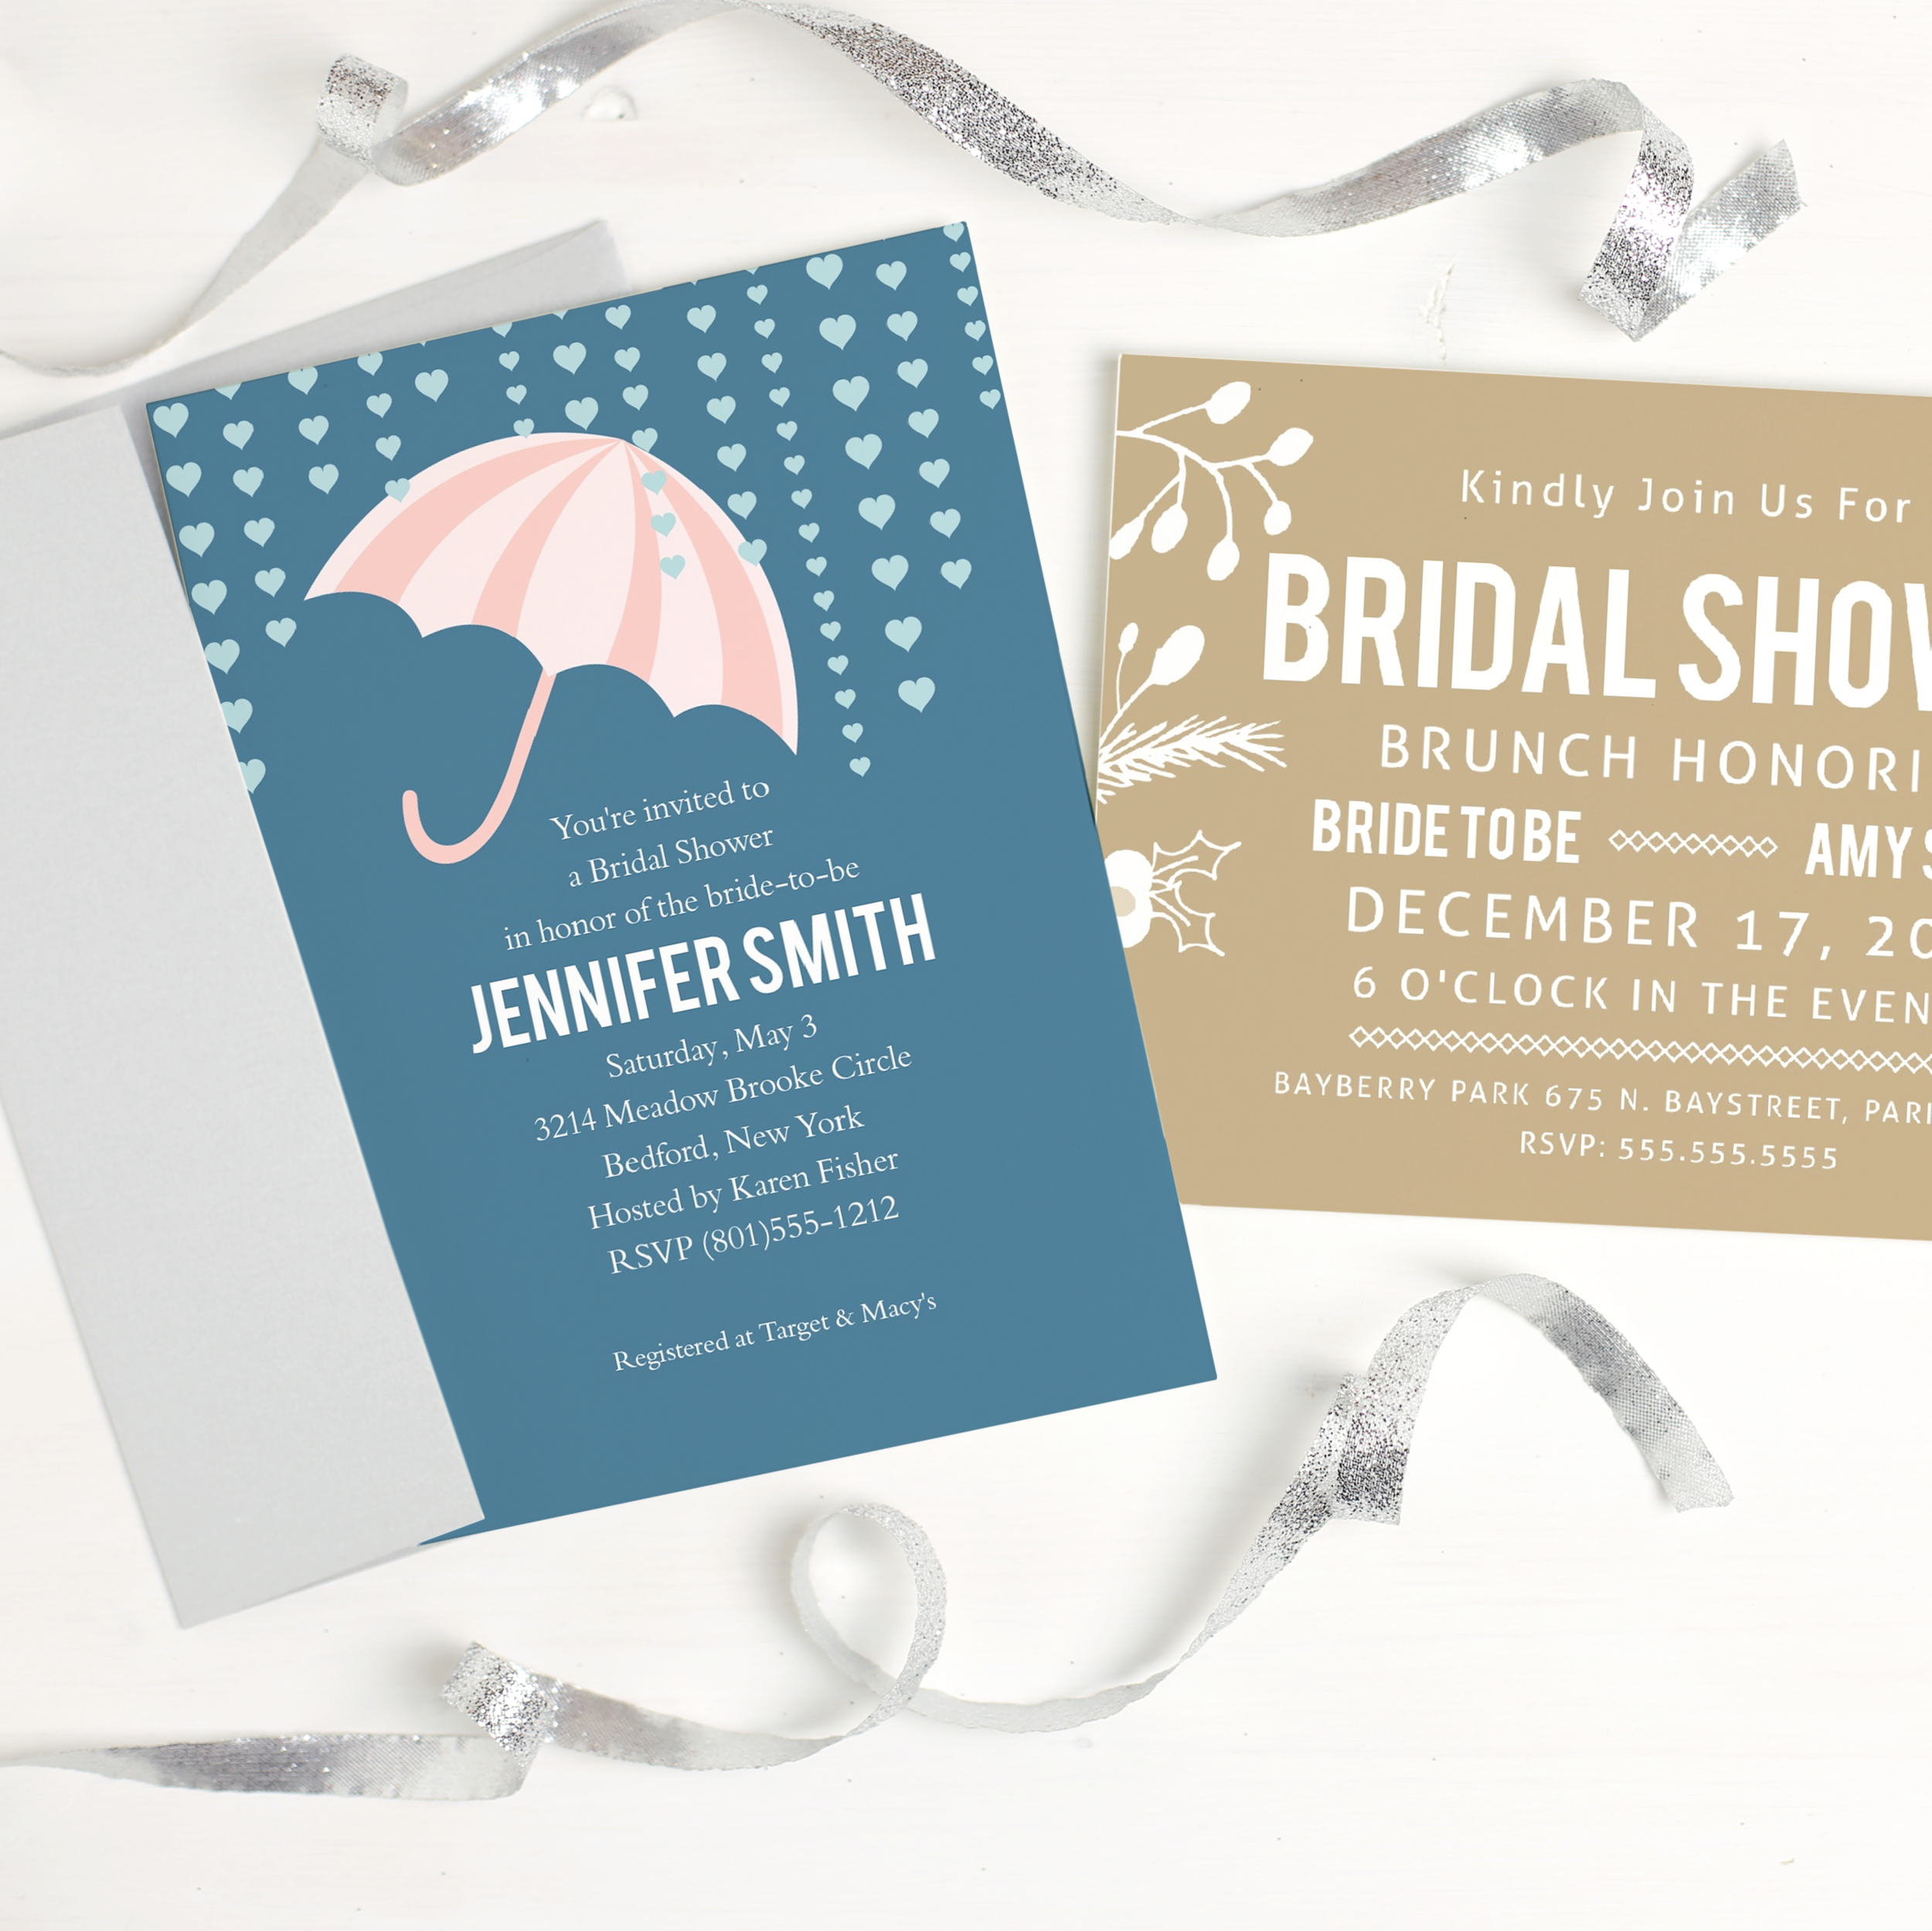 Basic_Invite_Bridal_Shower_Invitations.png